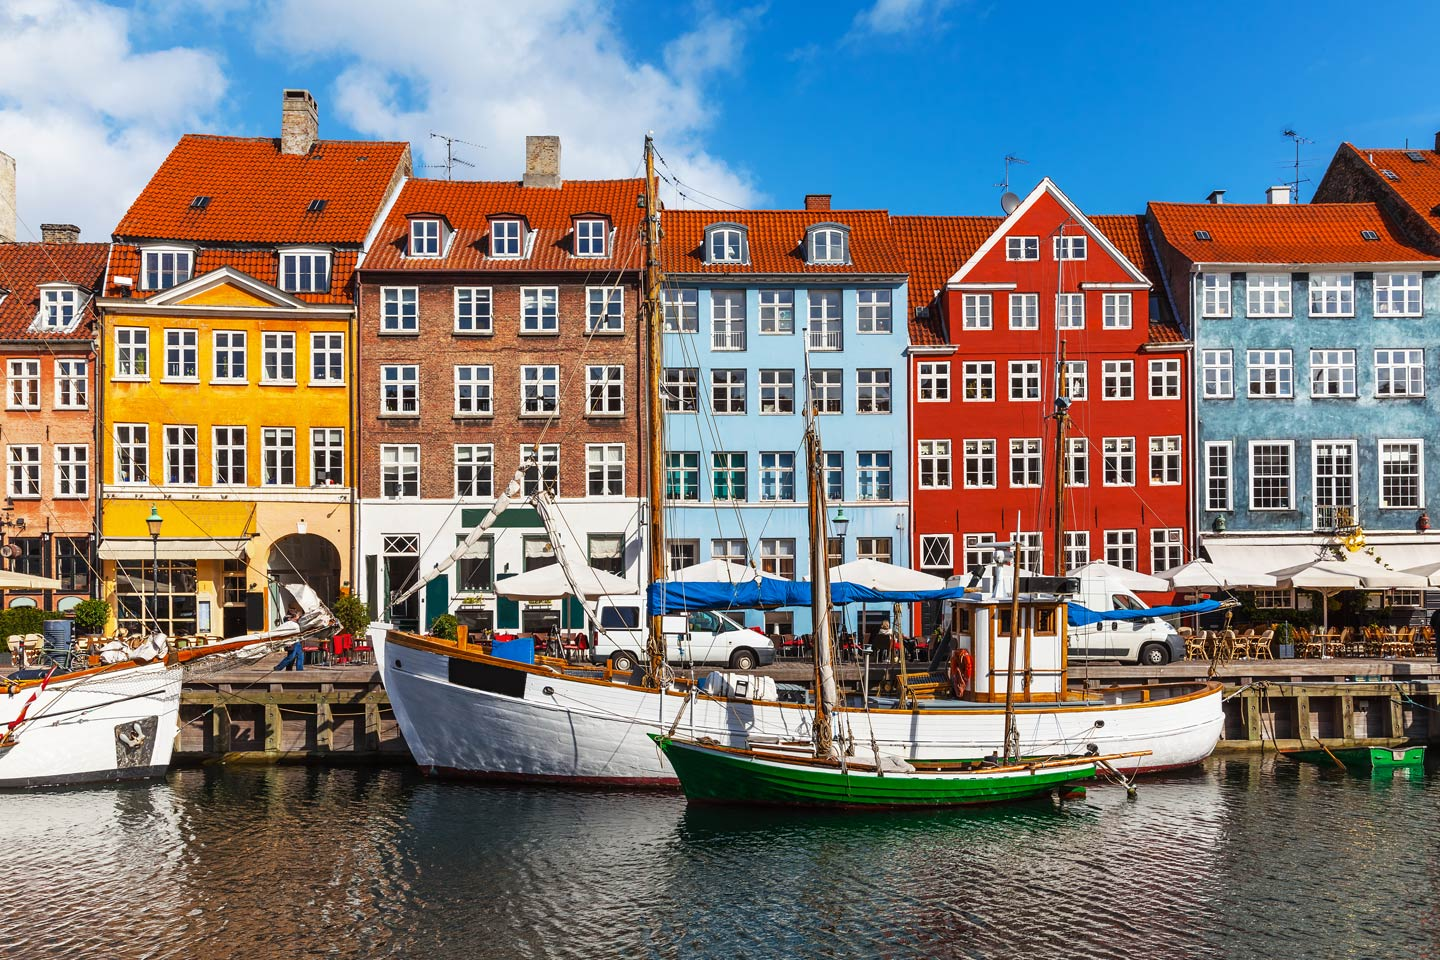 Boats parked in front of Copenhagen's landmark colorful homes in the Nyhavn area.